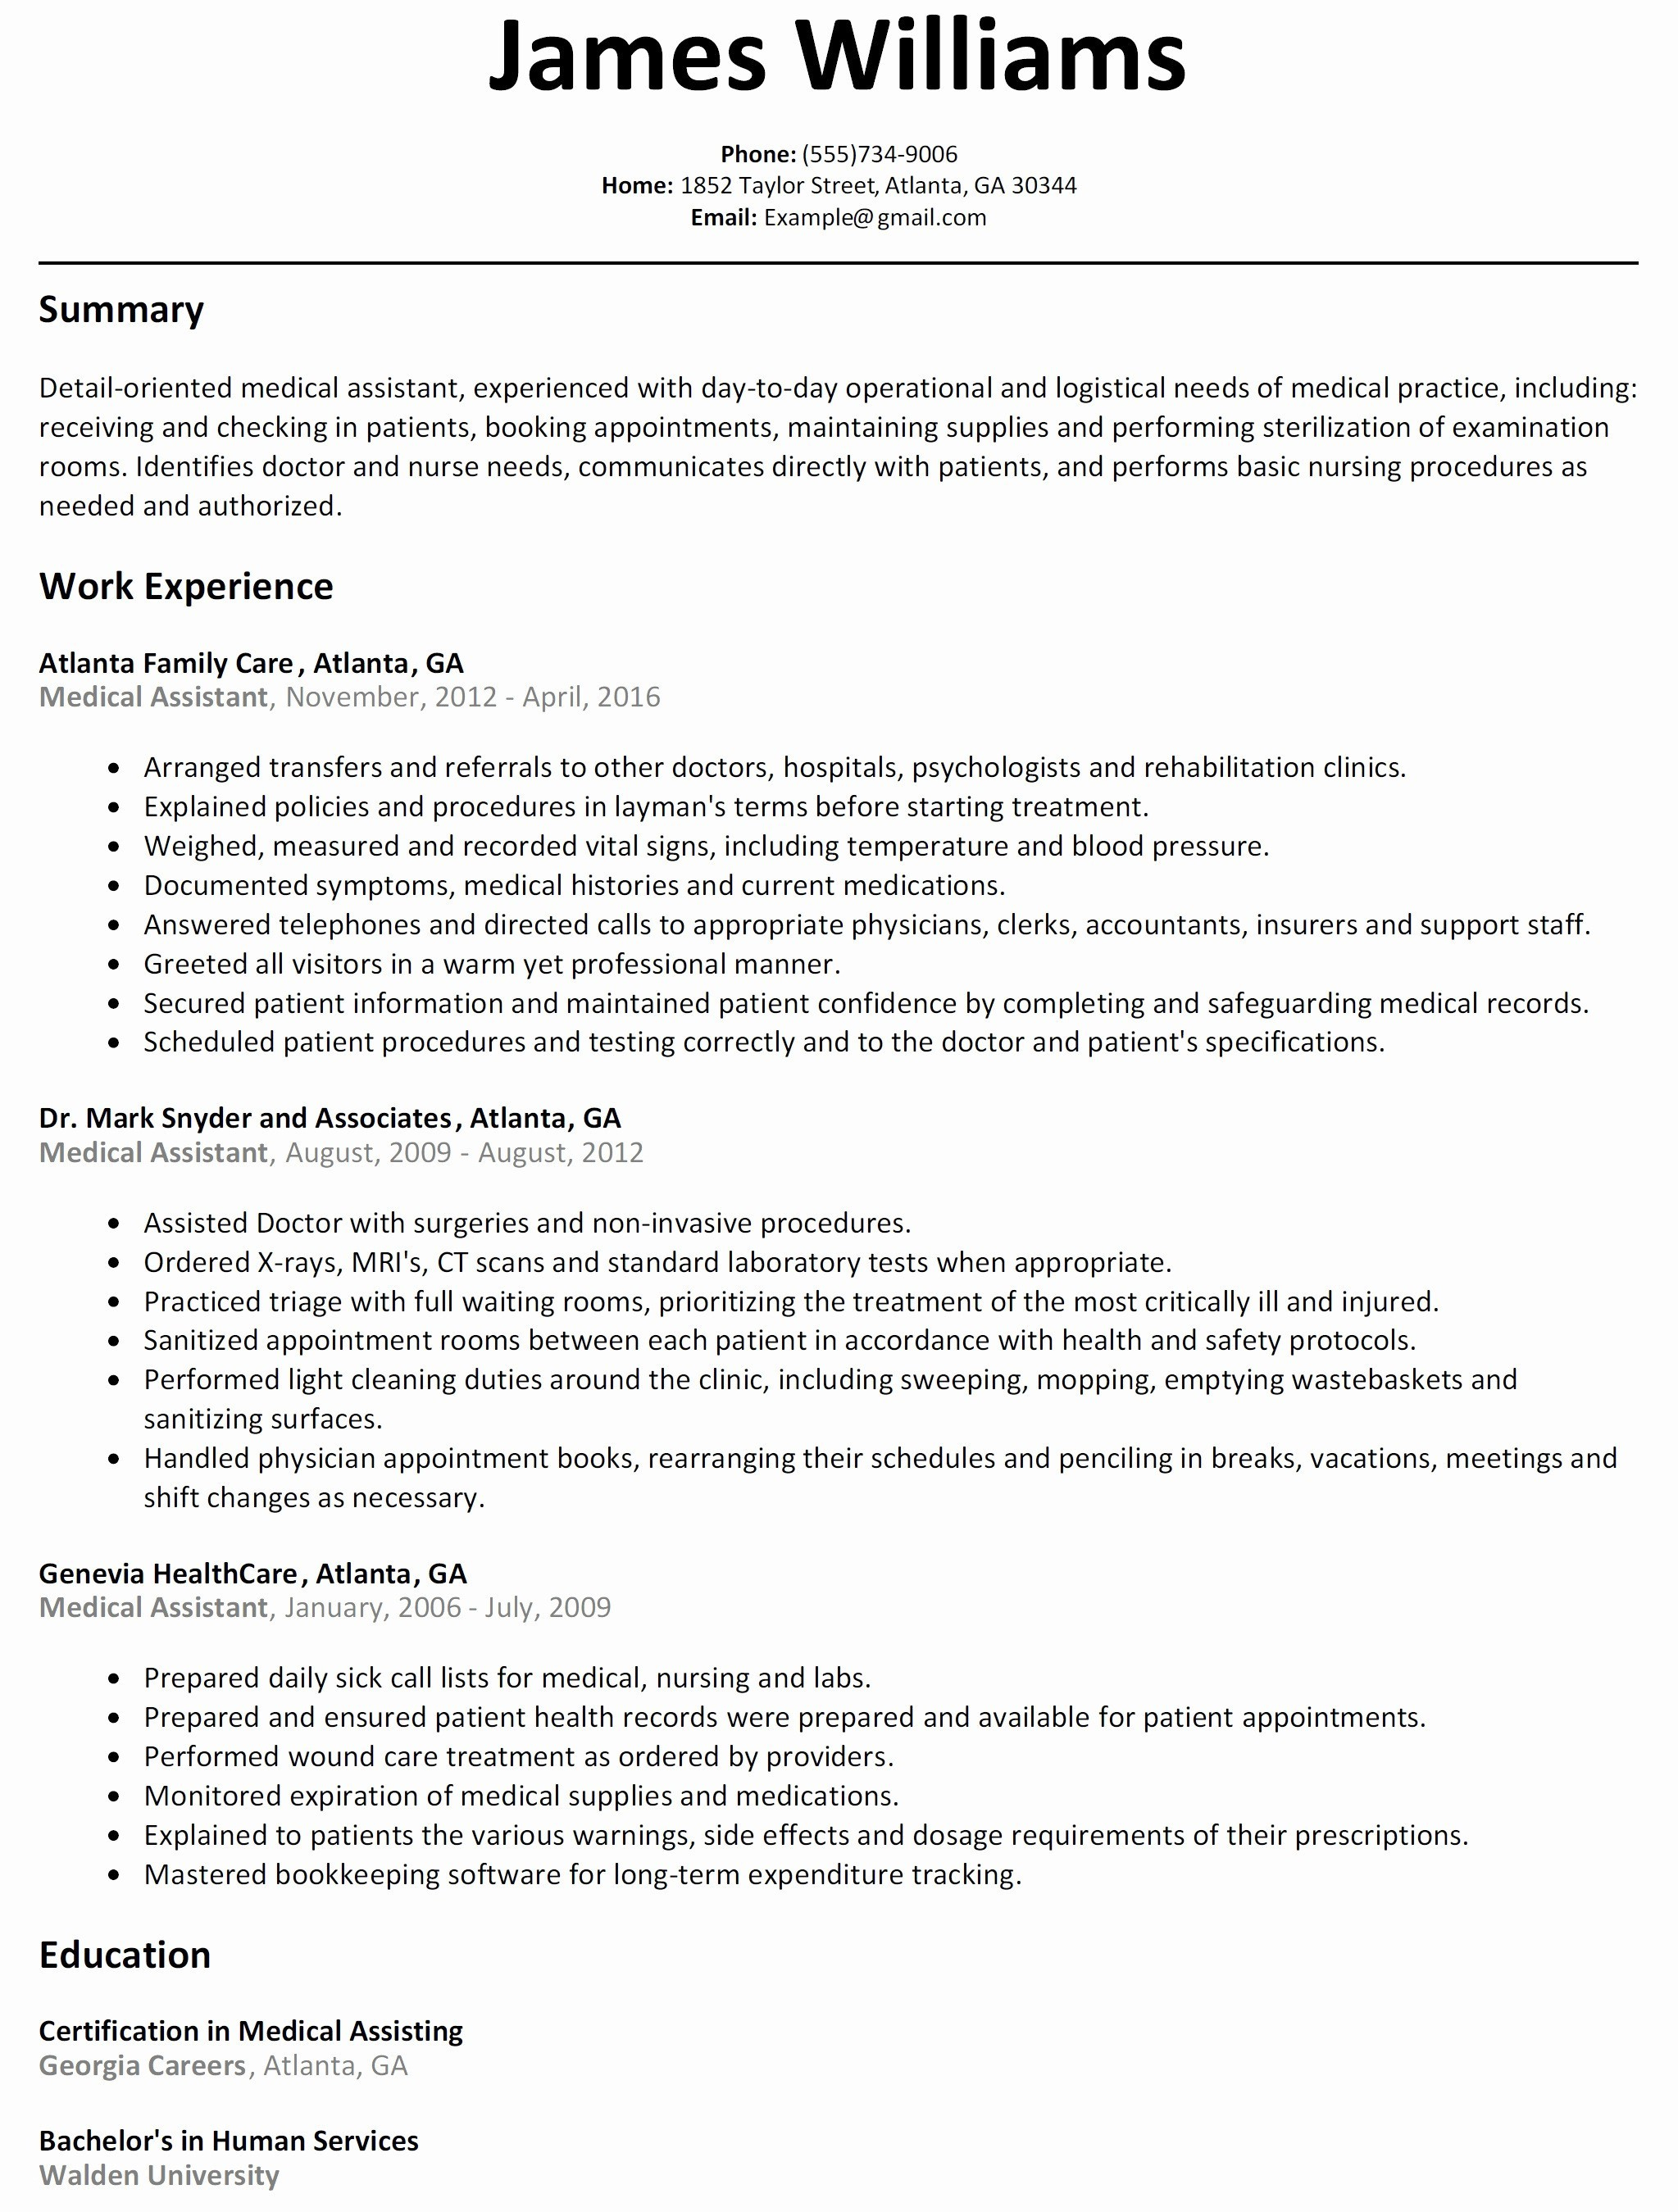 google cv maker example-Google Resume Maker 23 Google Resume Maker 2-f